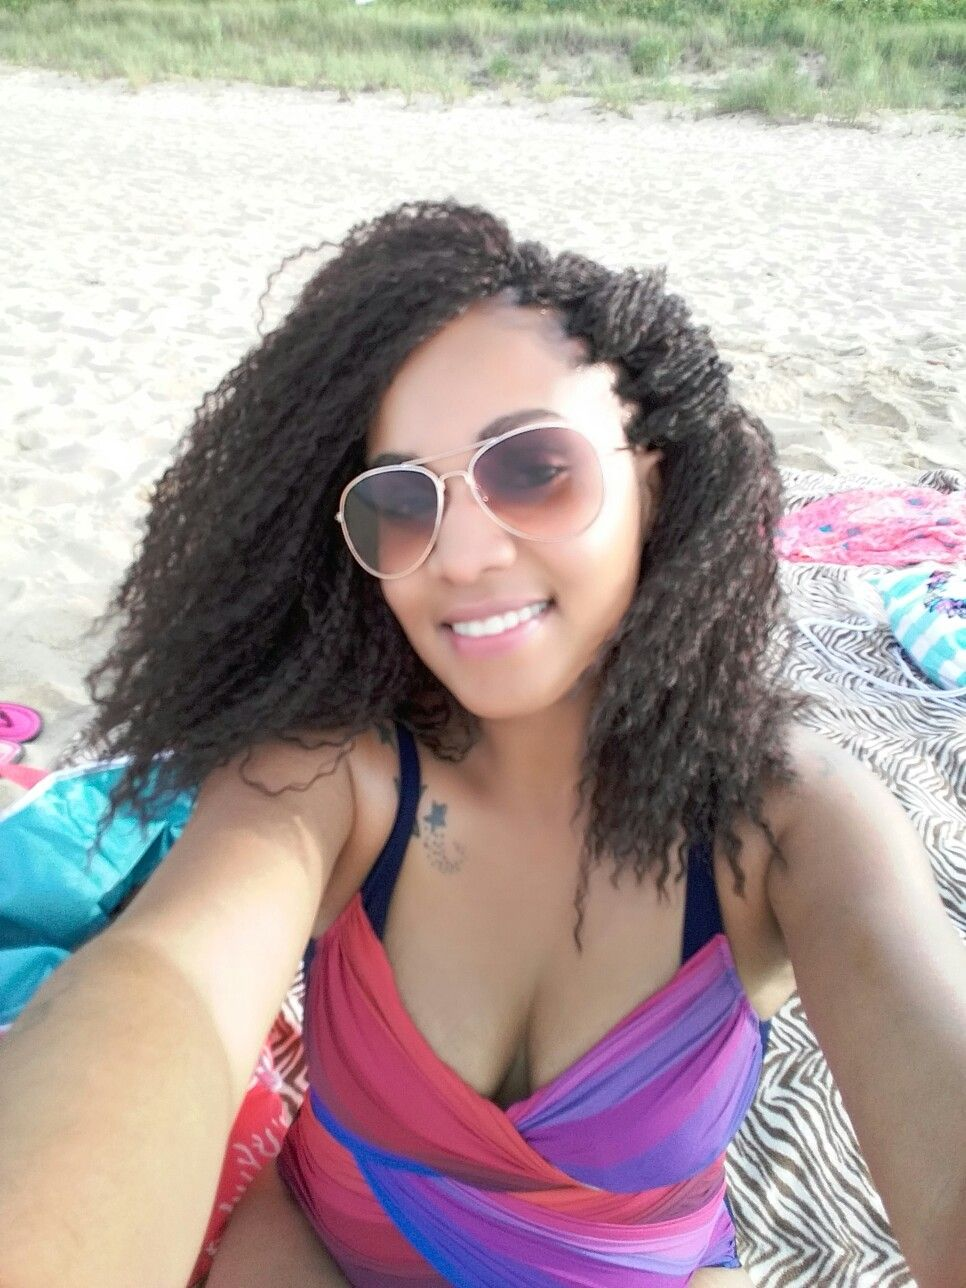 17 best images about tress ocean wave crochet braids on 17 best images about tress ocean wave crochet braids tress bohemian braid twists and in color